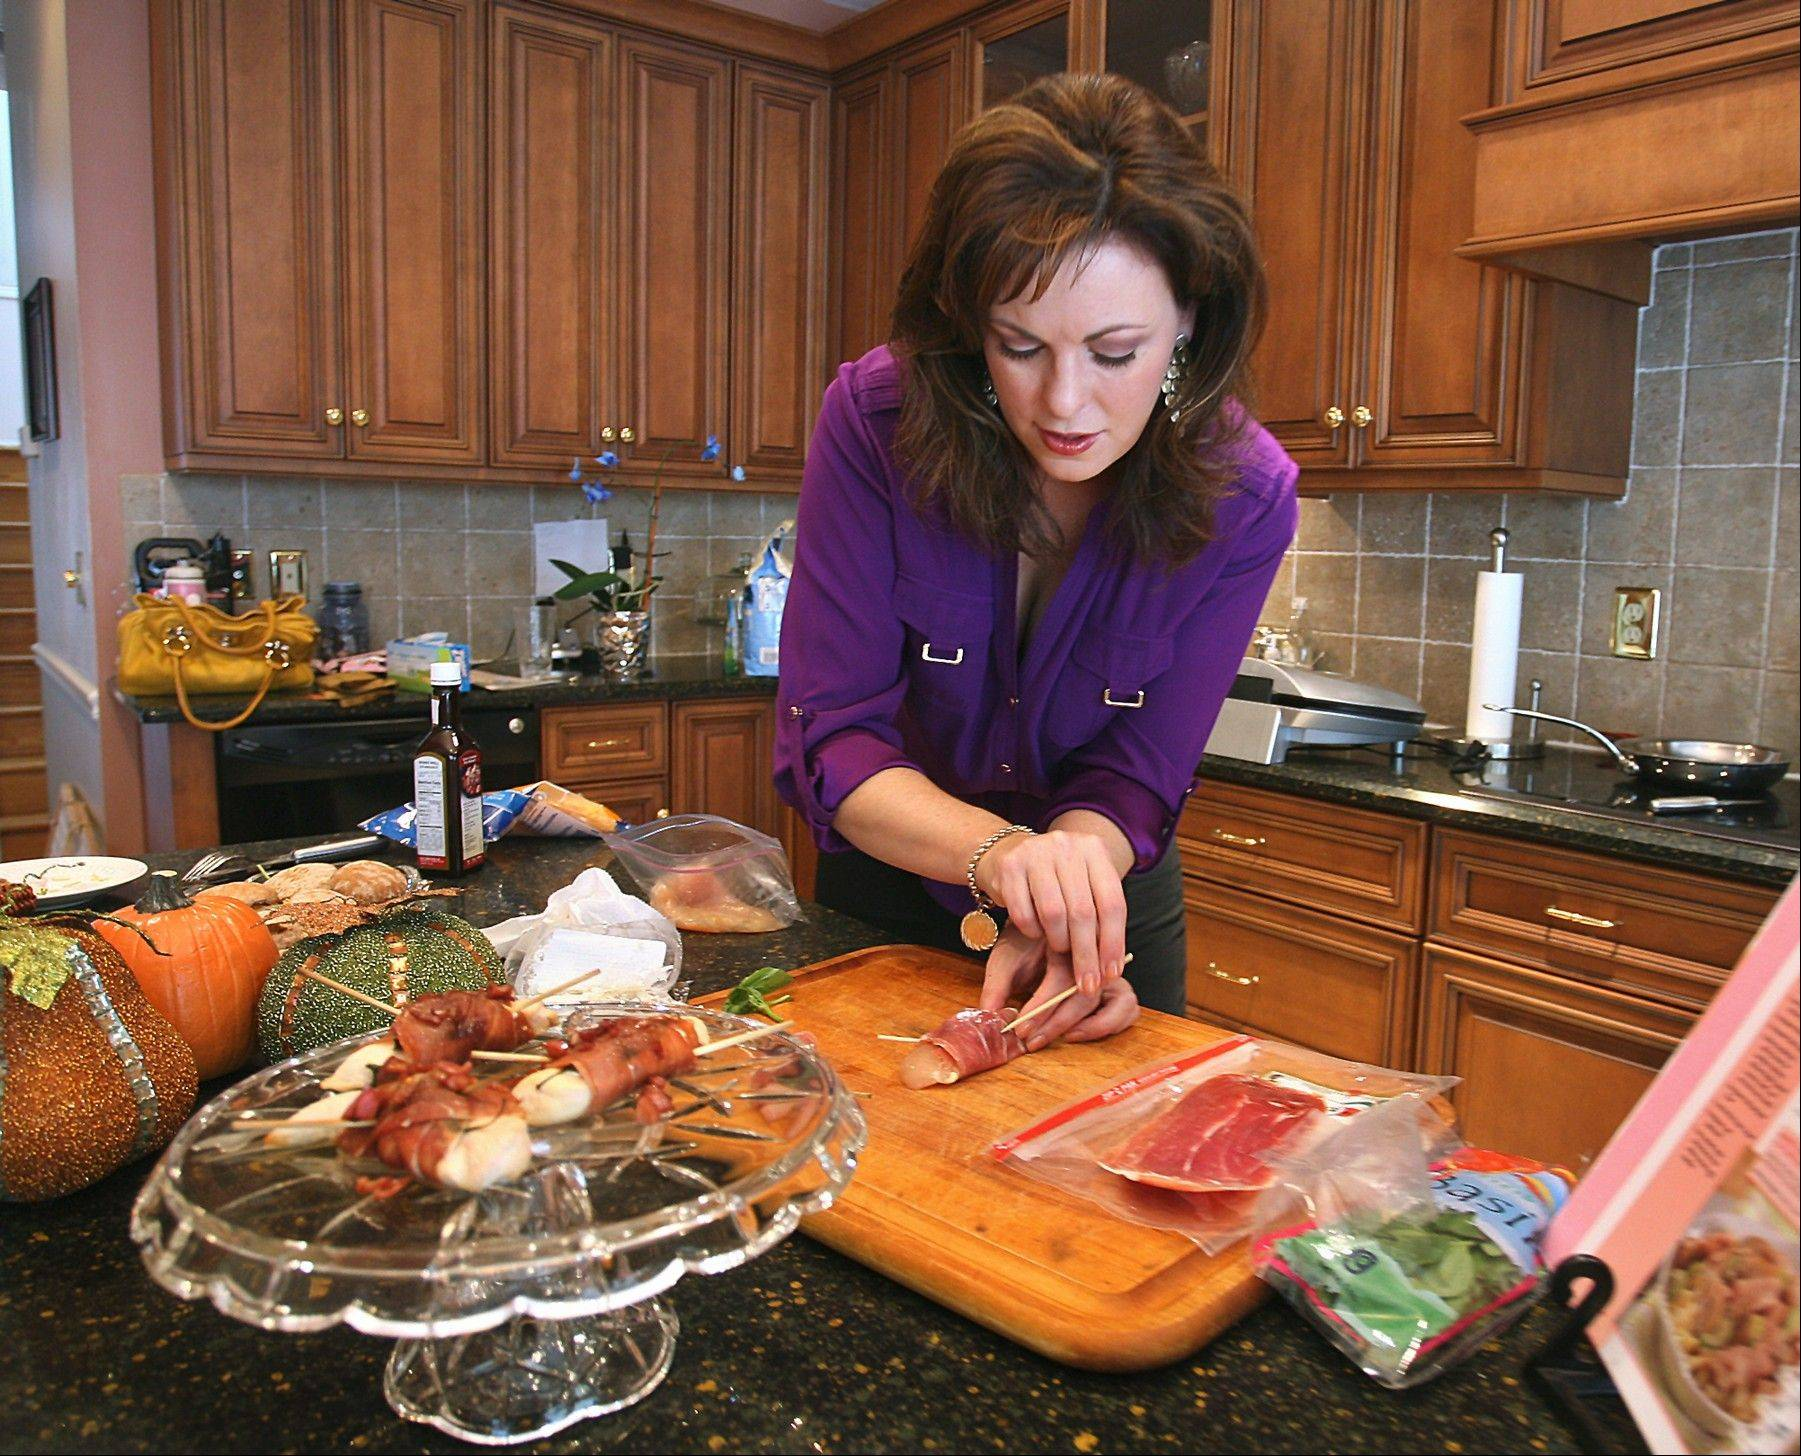 Former Miss America Nicole Johnson, a diabetic, prepares Prosciutto-Wrapped Chicken with Goat Cheese.